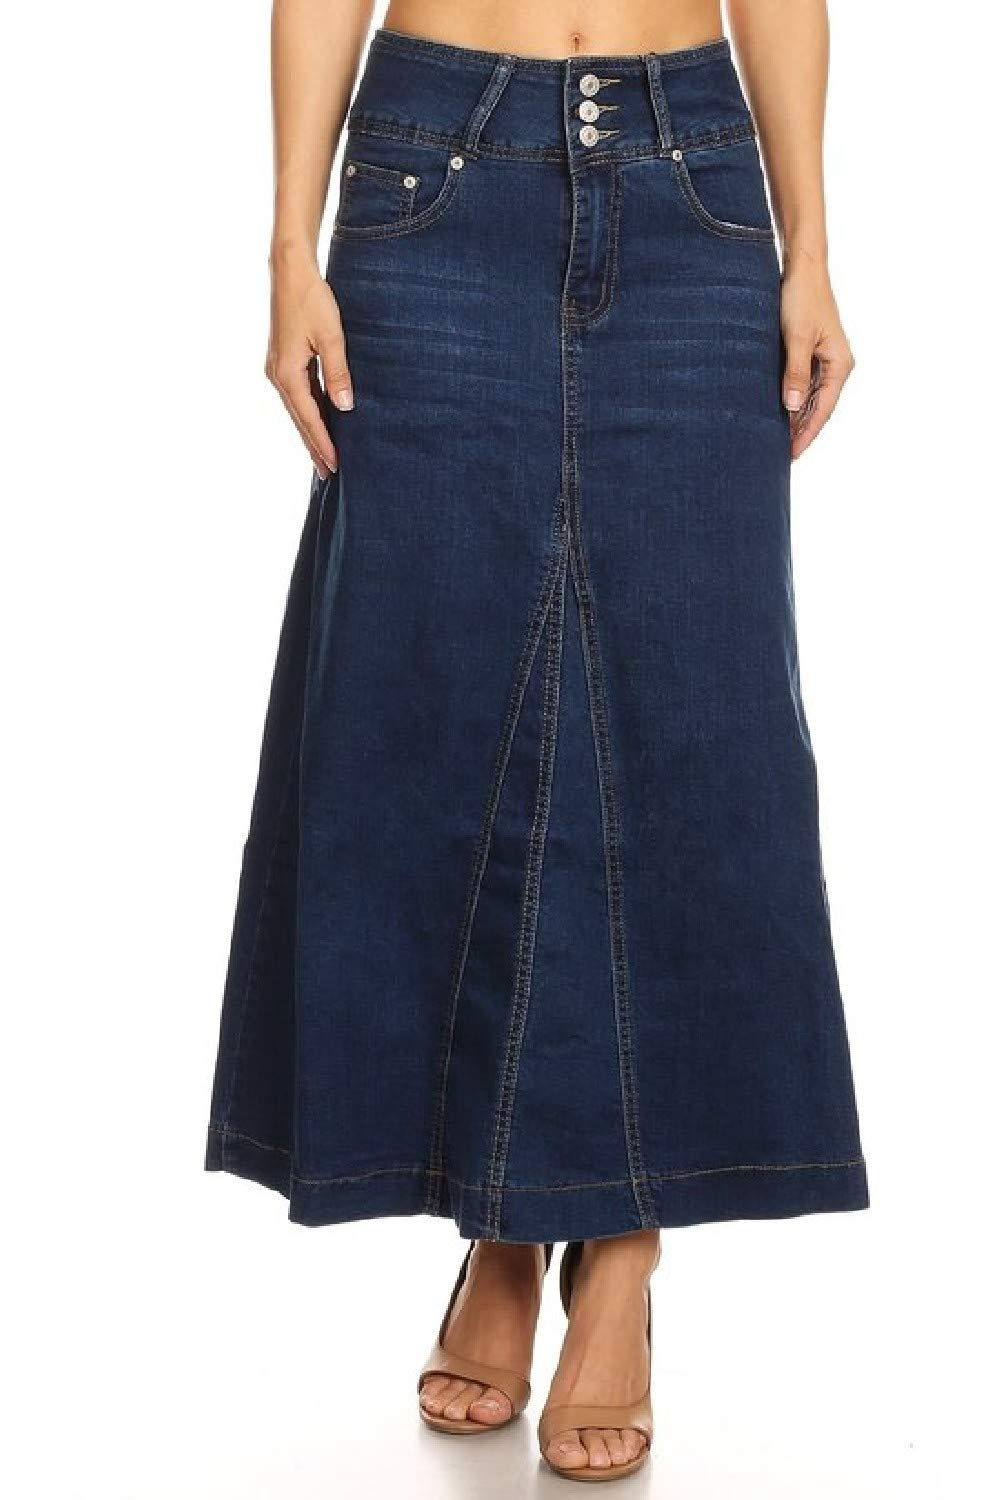 Women's Plus Size High Rise A-Line Long Jeans Maxi Flared Denim Skirt in Blue Size 1XL by Fashion2Love